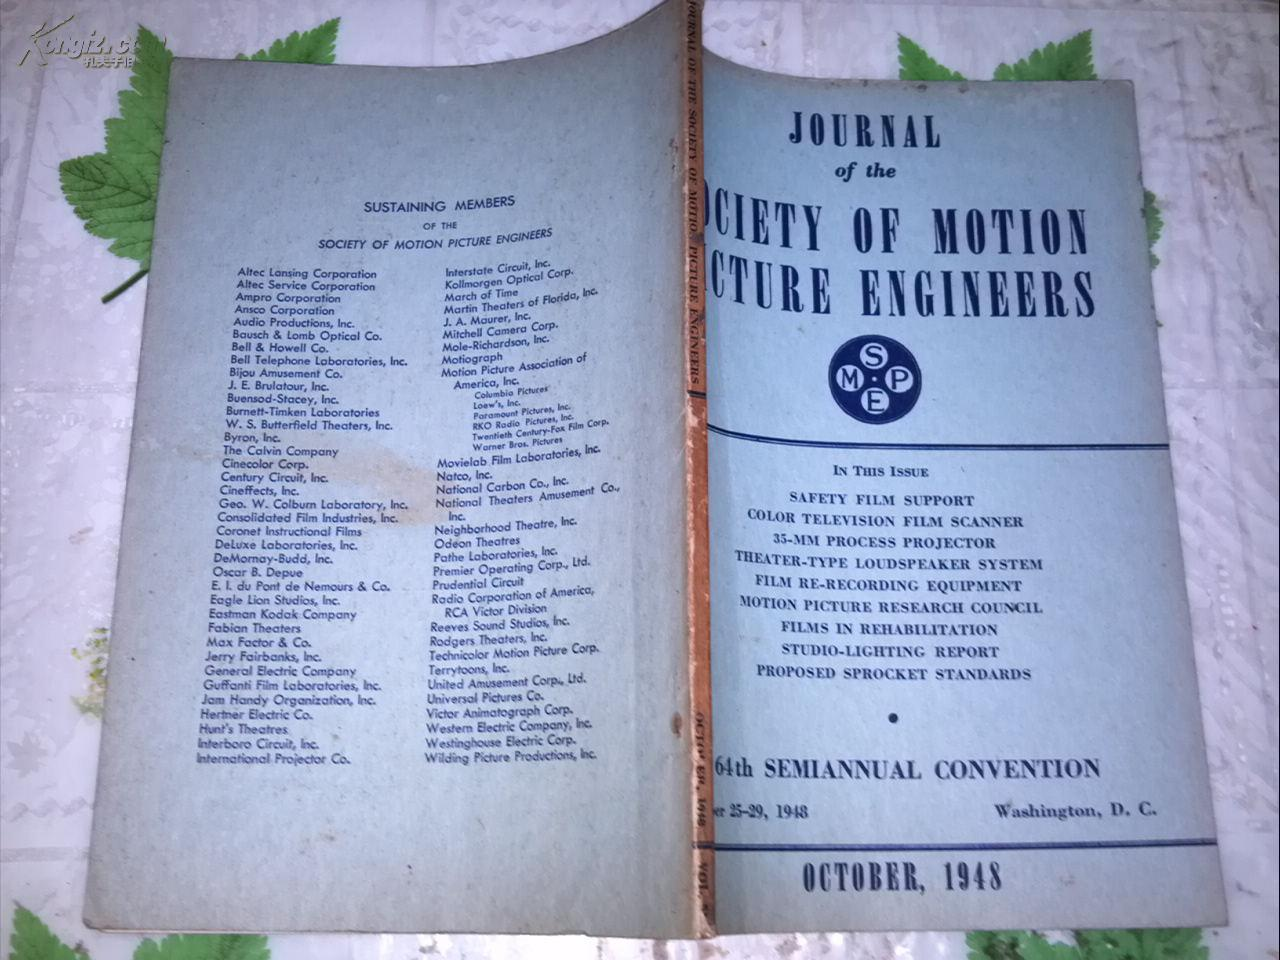 JOURNAL OF THE SOCIETY OF MOTION PICTURE ENGINEERS  OCTOBER, 1948電影工程師協會雜志1948年10月號